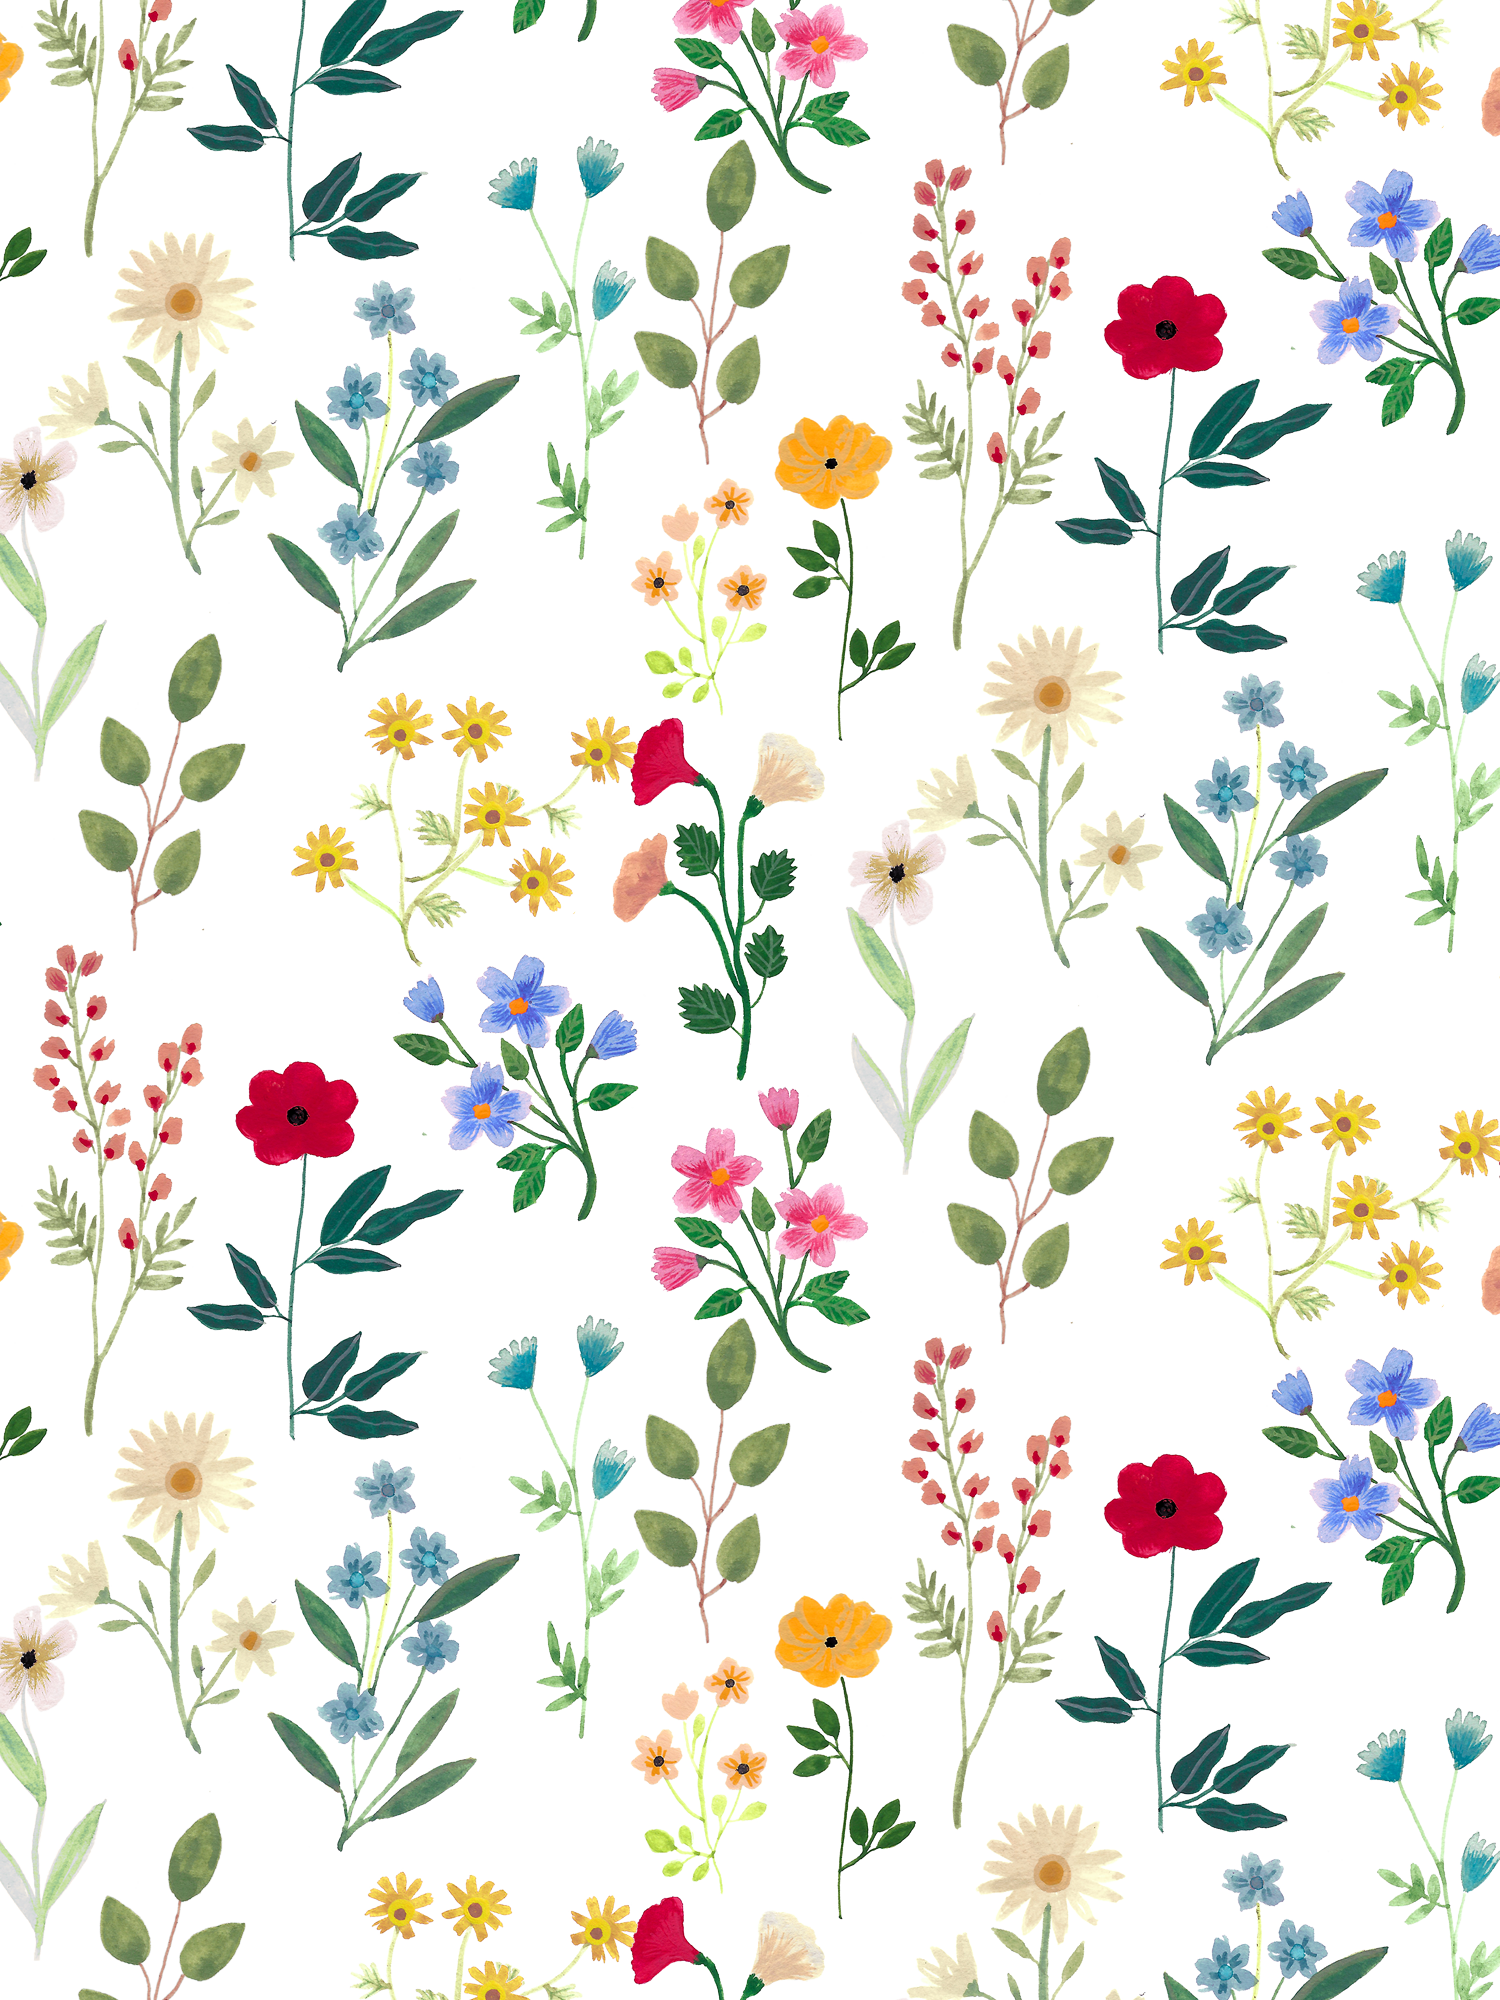 Flower Drawing Wallpapers Top Free Flower Drawing Backgrounds